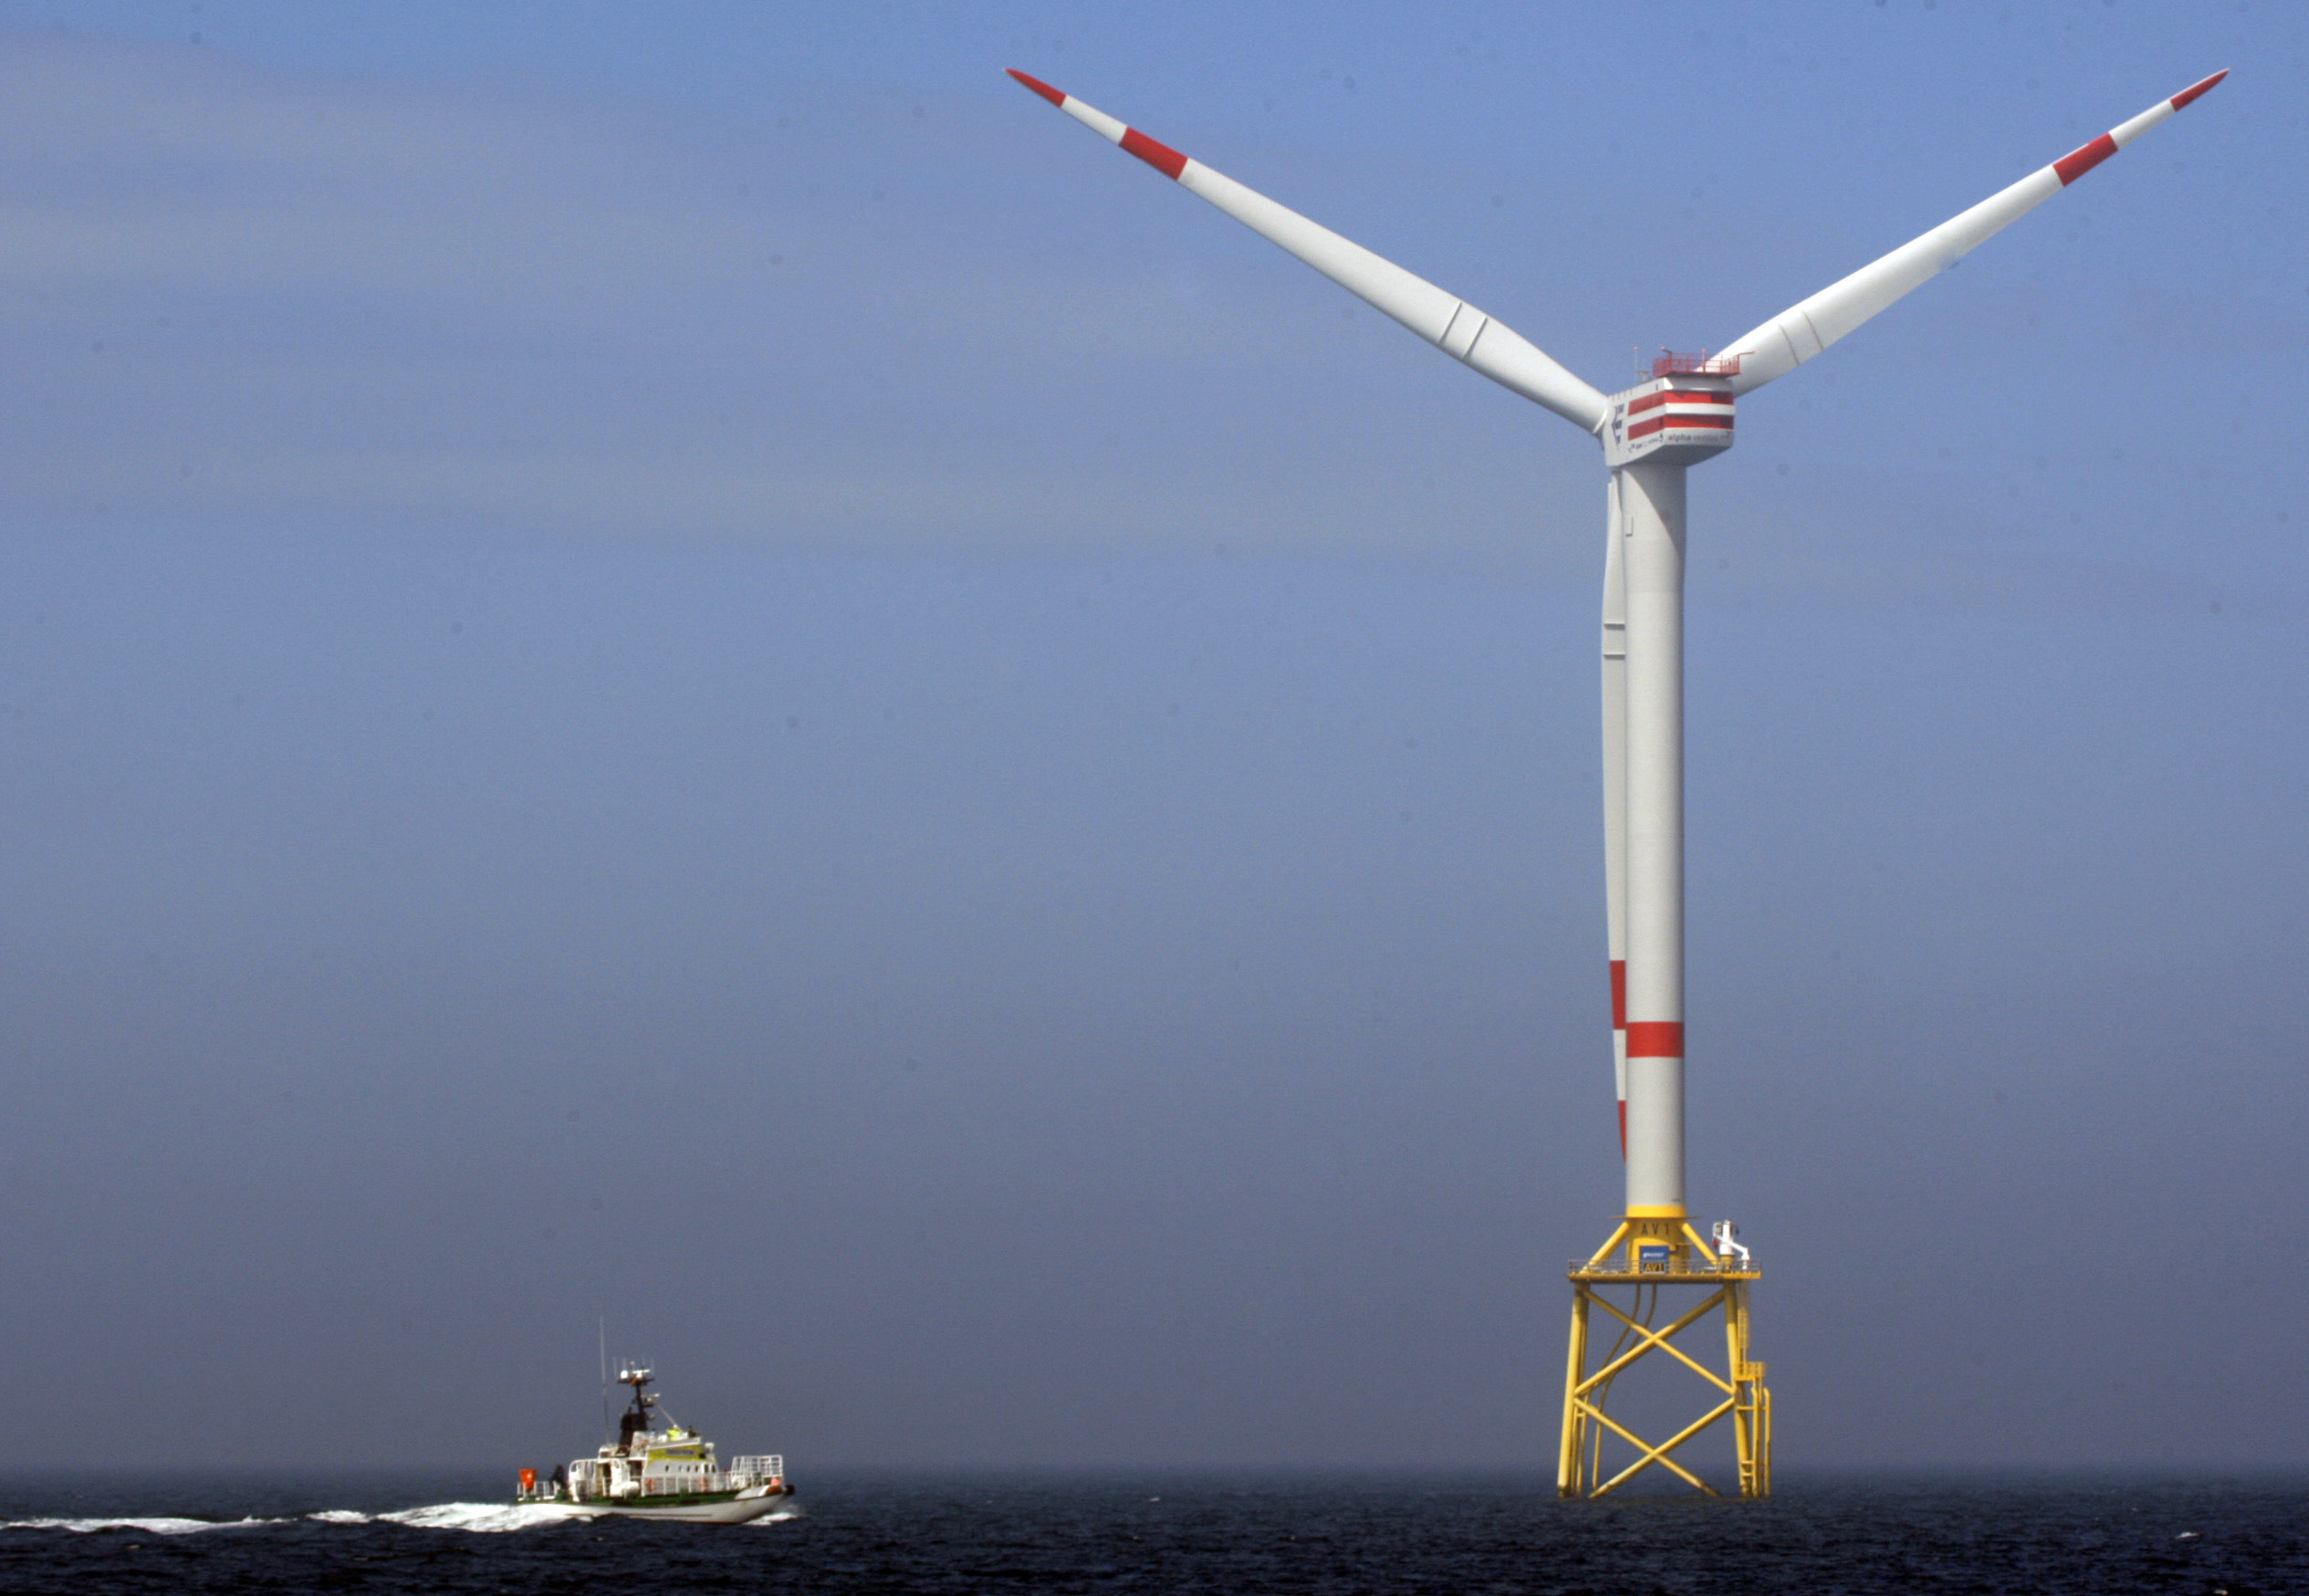 Germany Wind Power FILE - In this April 26, 2010 file photo a boat approaches a German windmill offshore power plant in the North Sea, 45 km off the coast of Norddeich. (AP Photo/Frank Augstein, file)